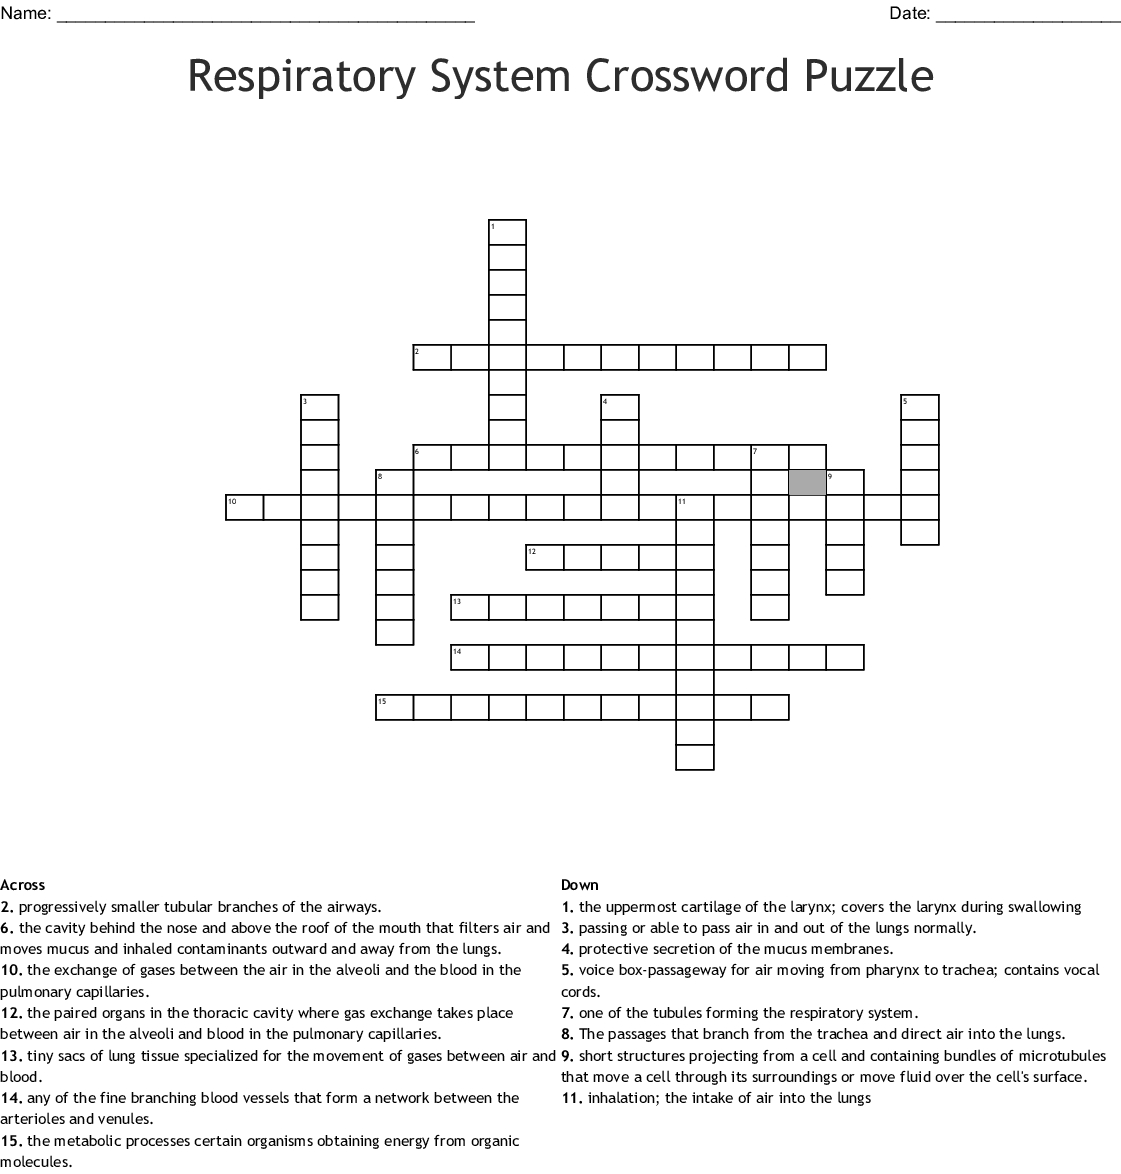 Respiratory System Crossword Puzzle Crossword - Wordmint - Respiratory System Crossword Puzzle Printable